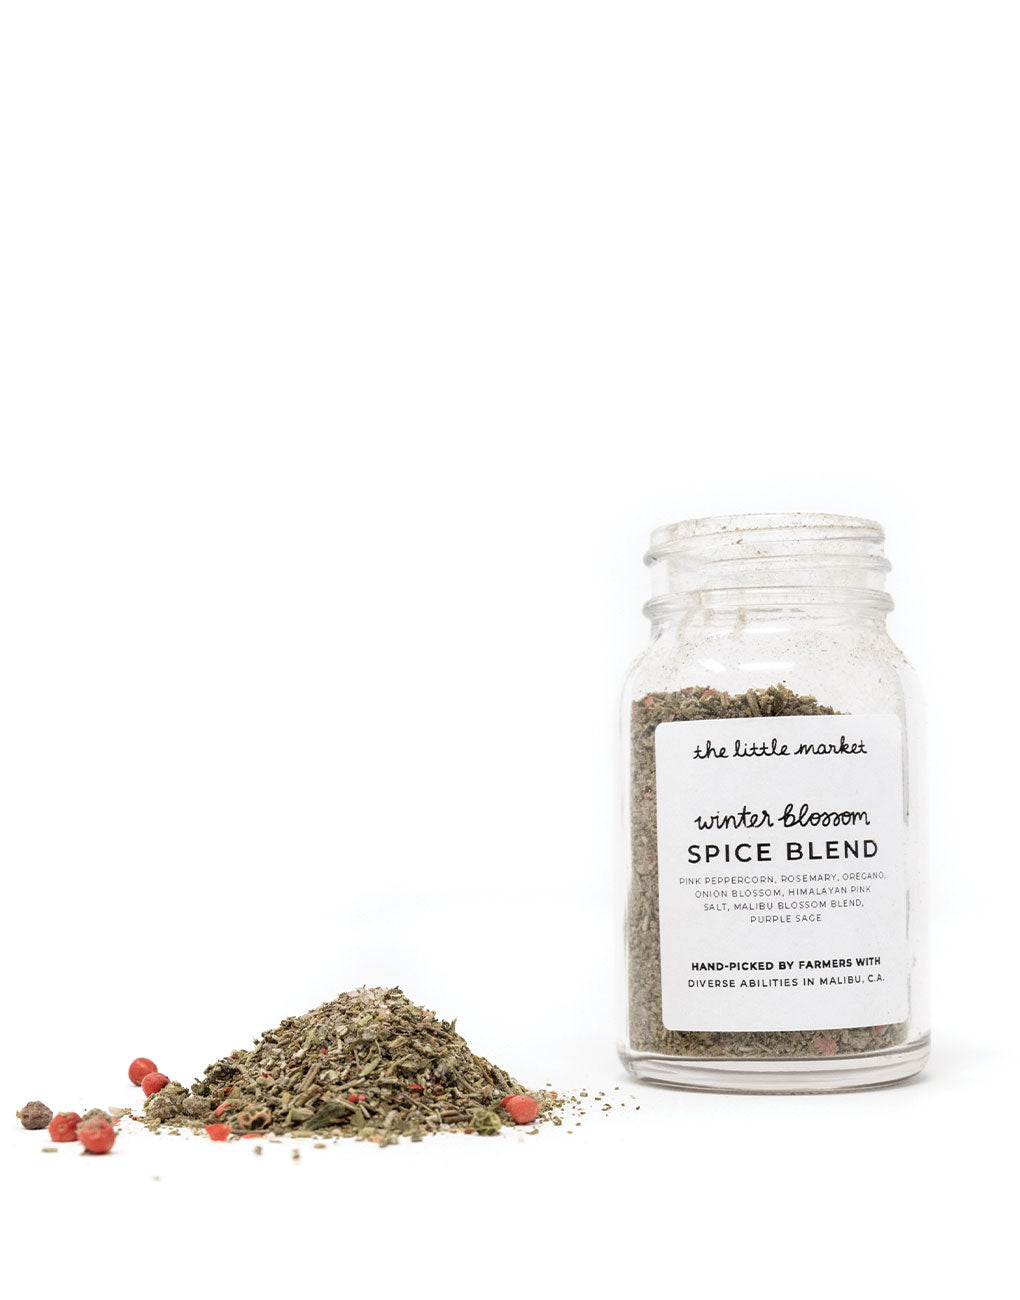 Winter Blossom Spice Blend | The Little Market